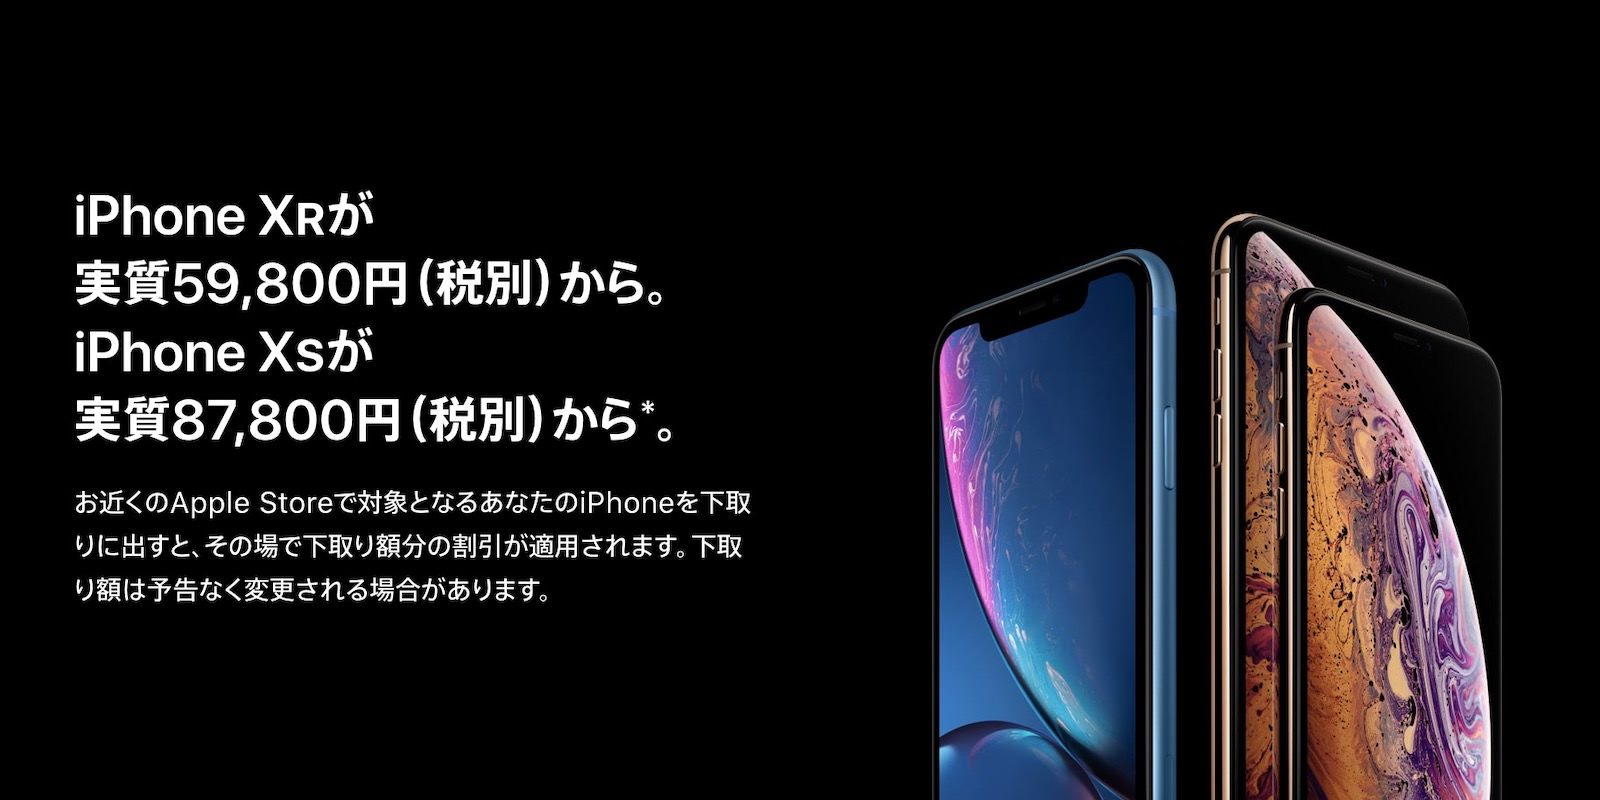 iphonexs-xr-retail-campaign-extended.jpg